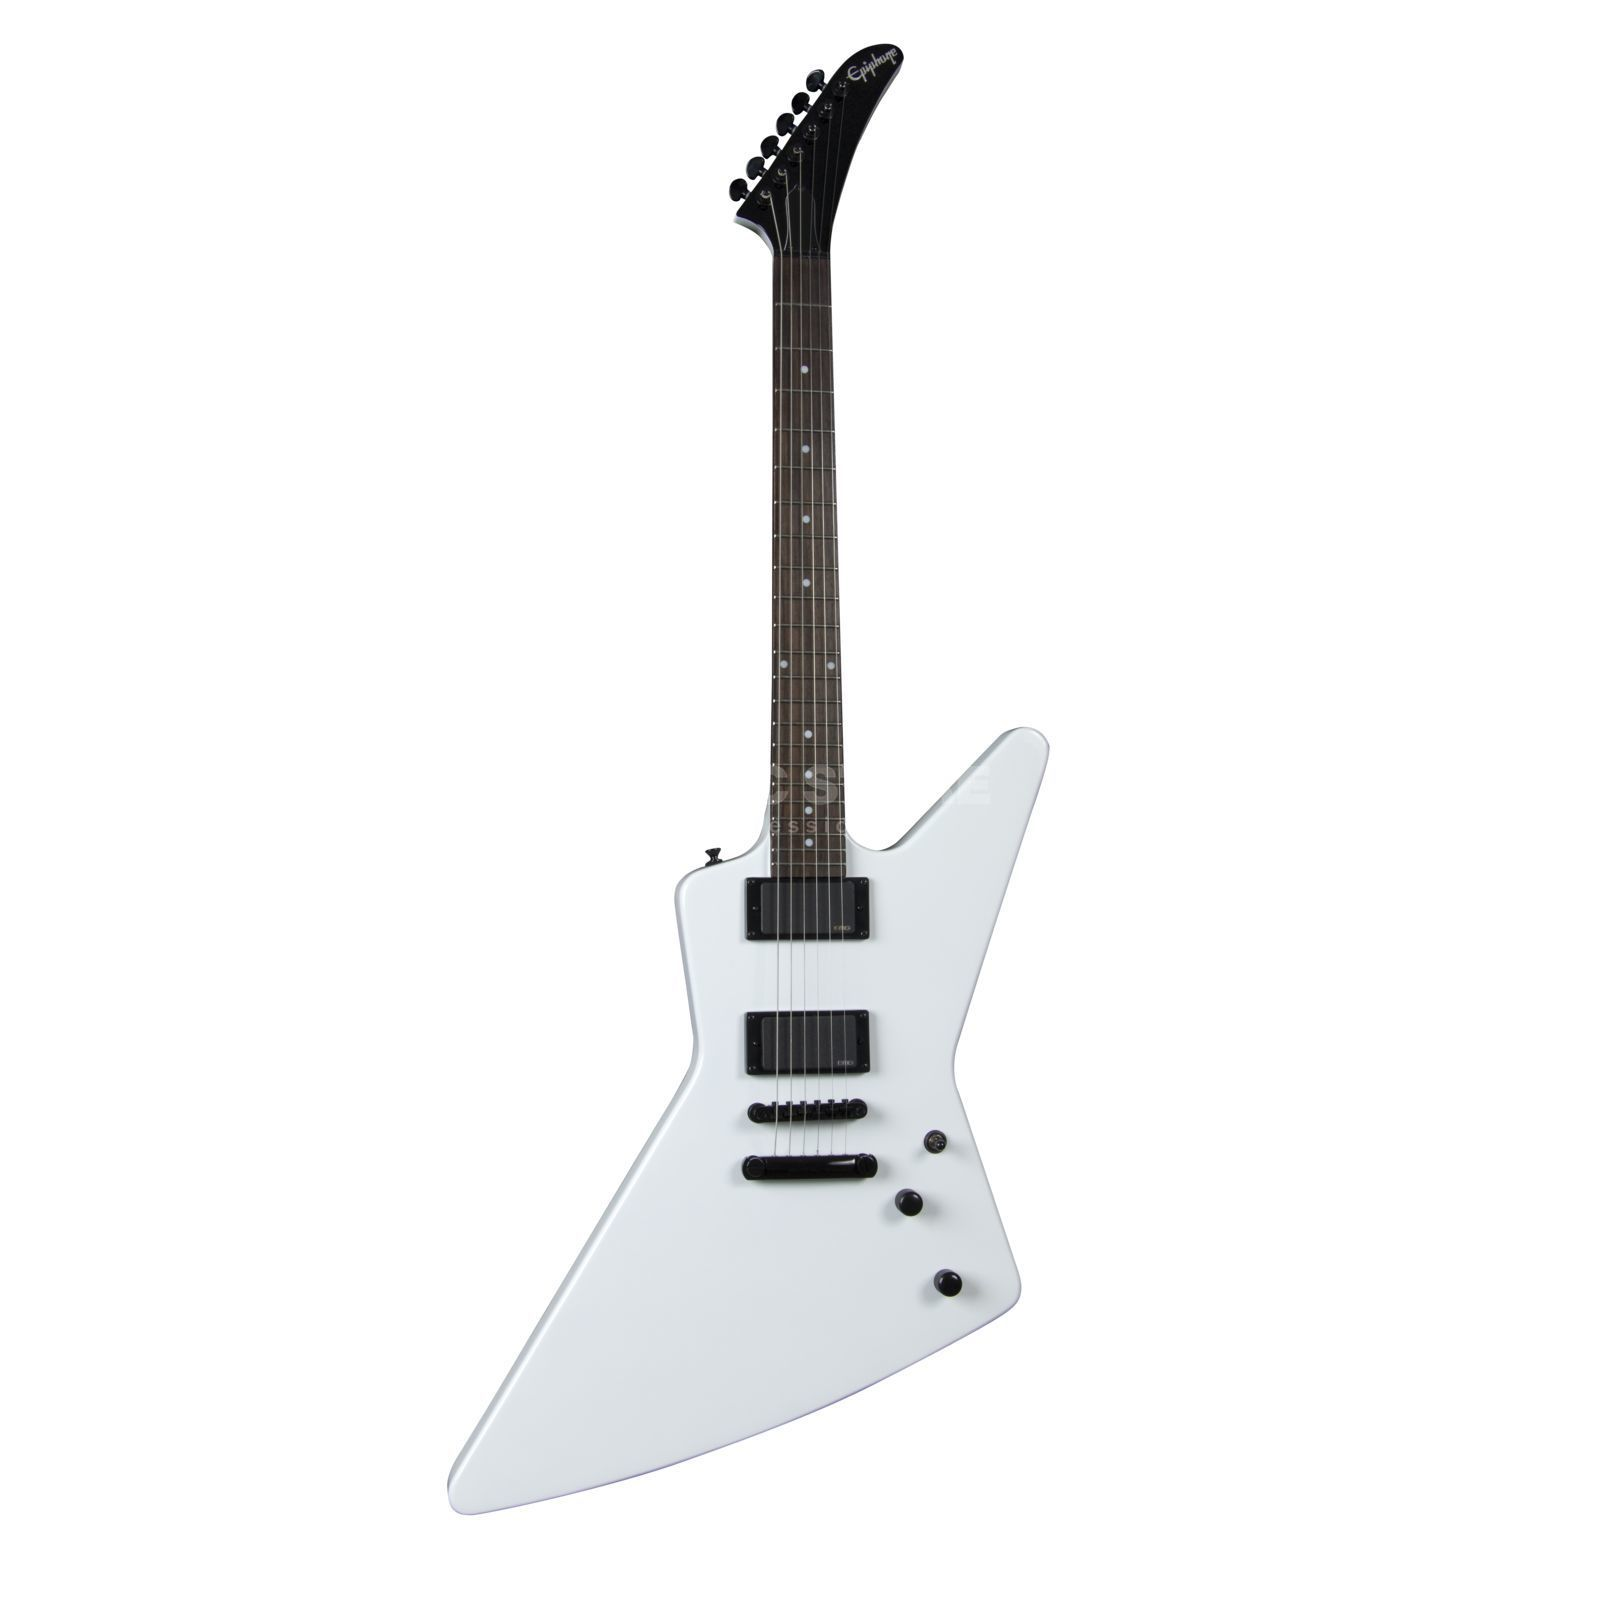 Epiphone 1984 Explorer EX Electric Guitar, Alpine White